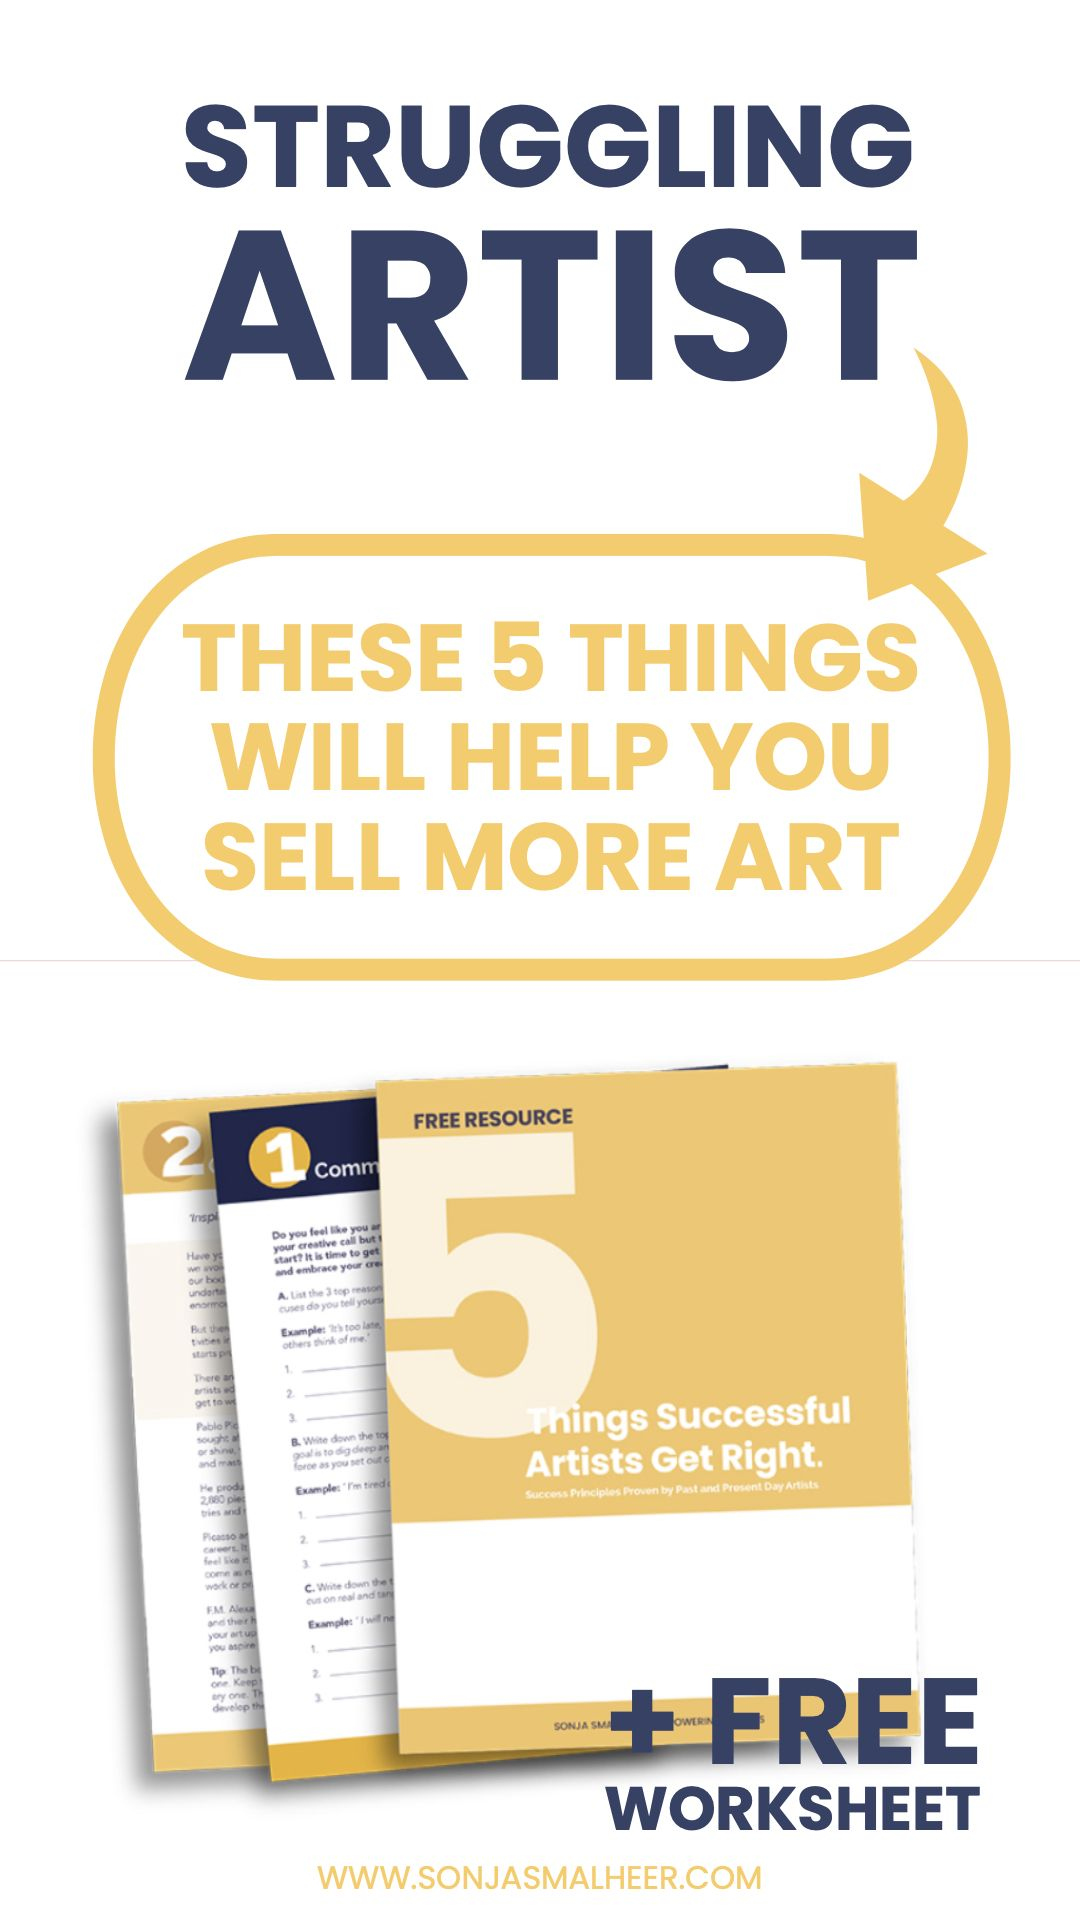 Apply These 5 Artist Success Principles To Your Art And